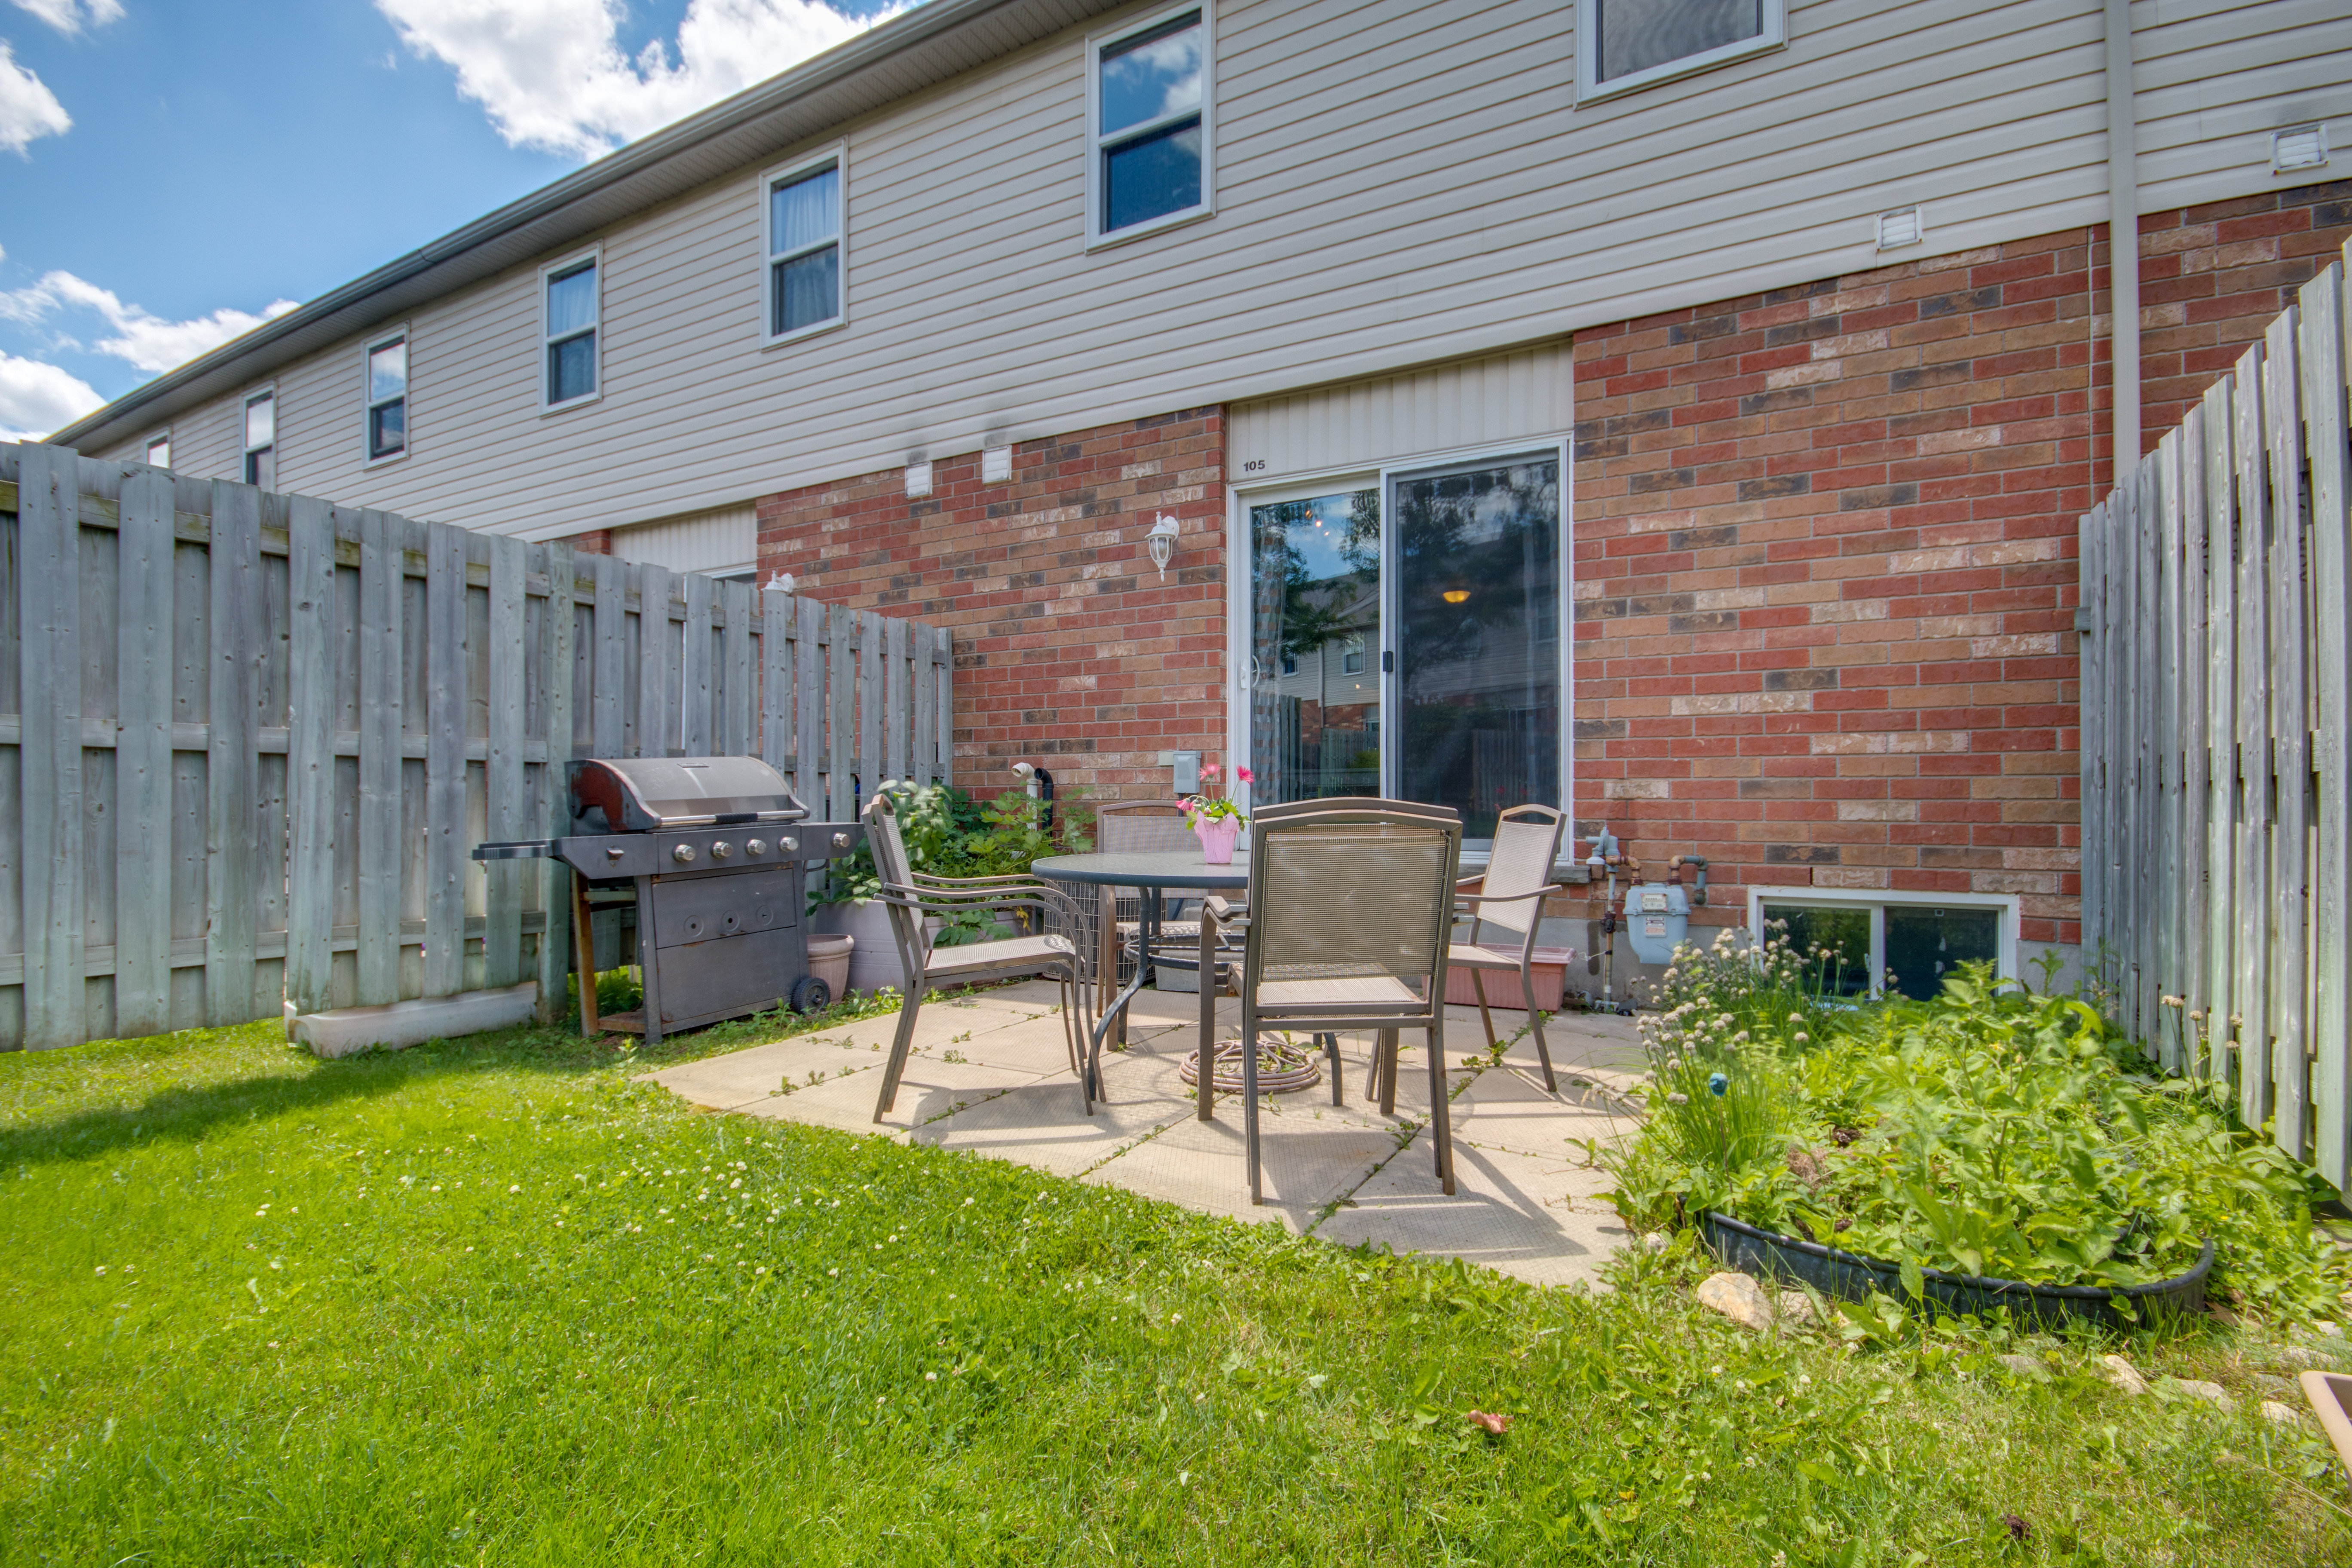 30 Imperial Road South, Guelph